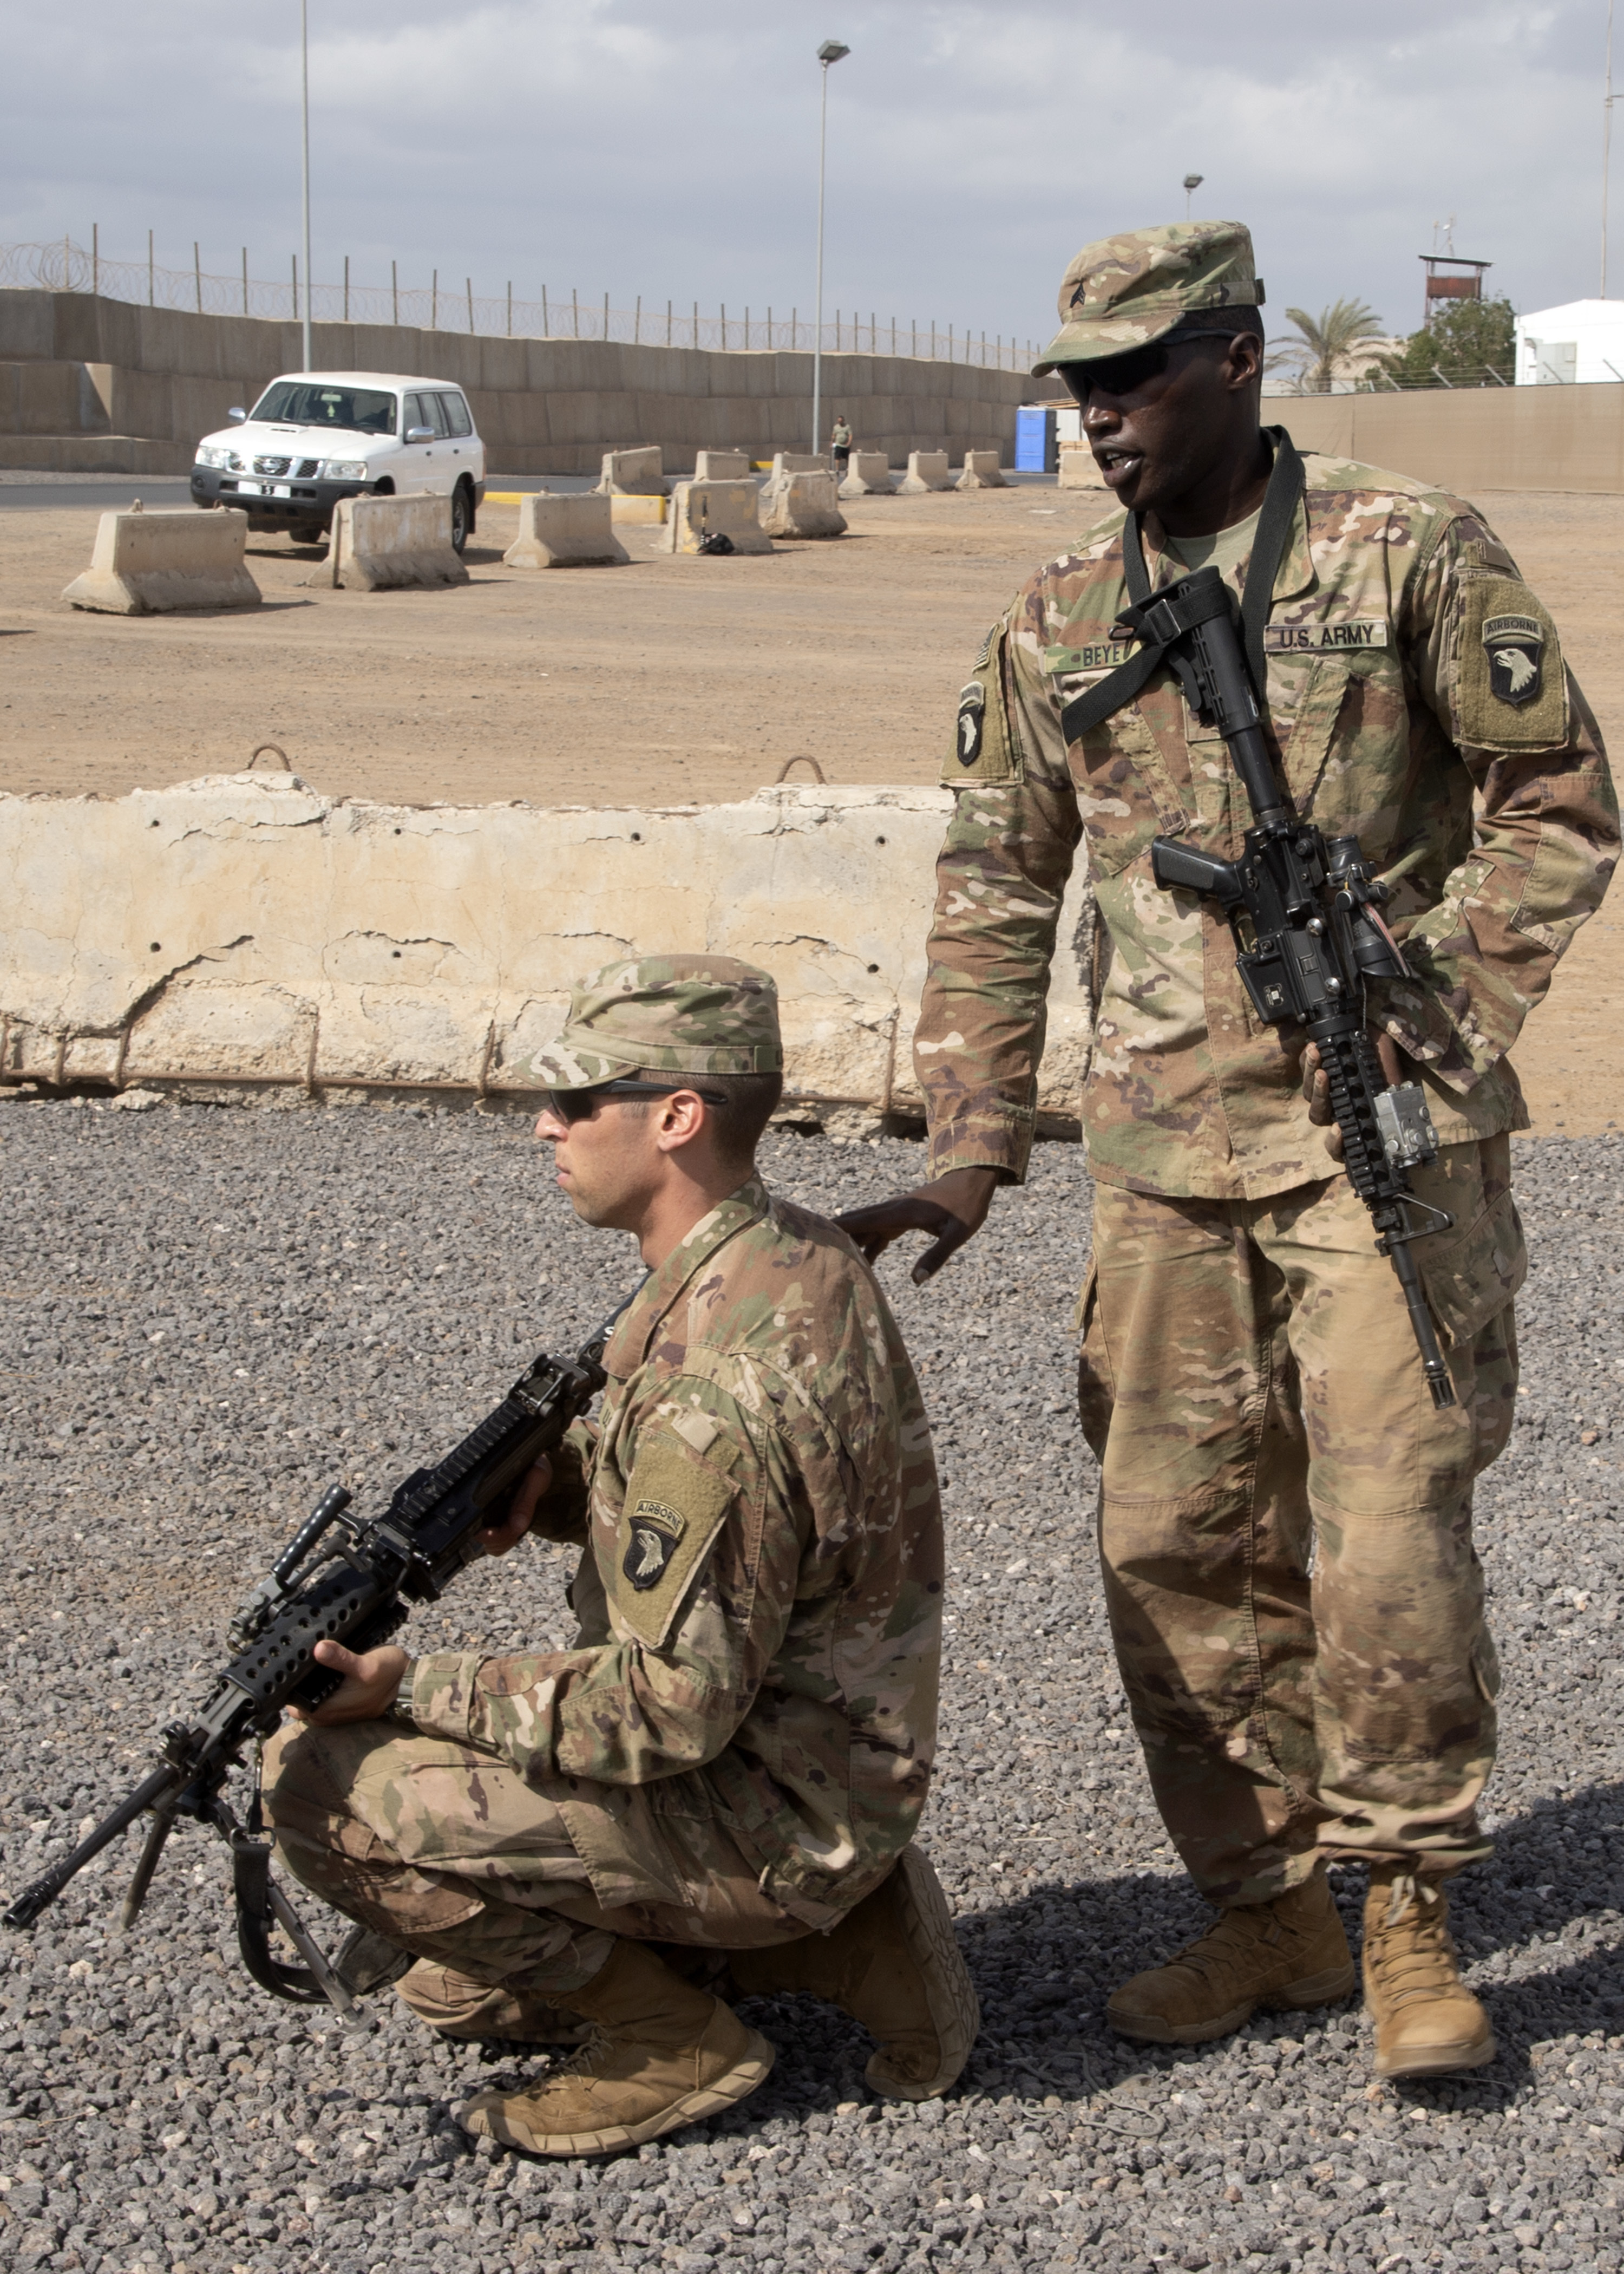 U.S. Army Sgt. Elhadji Beye, Viper Company, 1-26 Infantry, 101st Airborne Division (Air Assault), with the East Africa Response Force (EARF) assigned to Combined Joint Task Force-Horn of Africa, instructs U.S. Army Spc. George Iliou at Camp Lemonnier, Djibouti, Feb. 8, 2019. The purpose of the EARF is to rapidly provide tailorable packages of forces to protect American interests on the African continent should any threats arise. (U.S. Navy Photo by Mass Communication Specialist 1st Class Nick Scott)